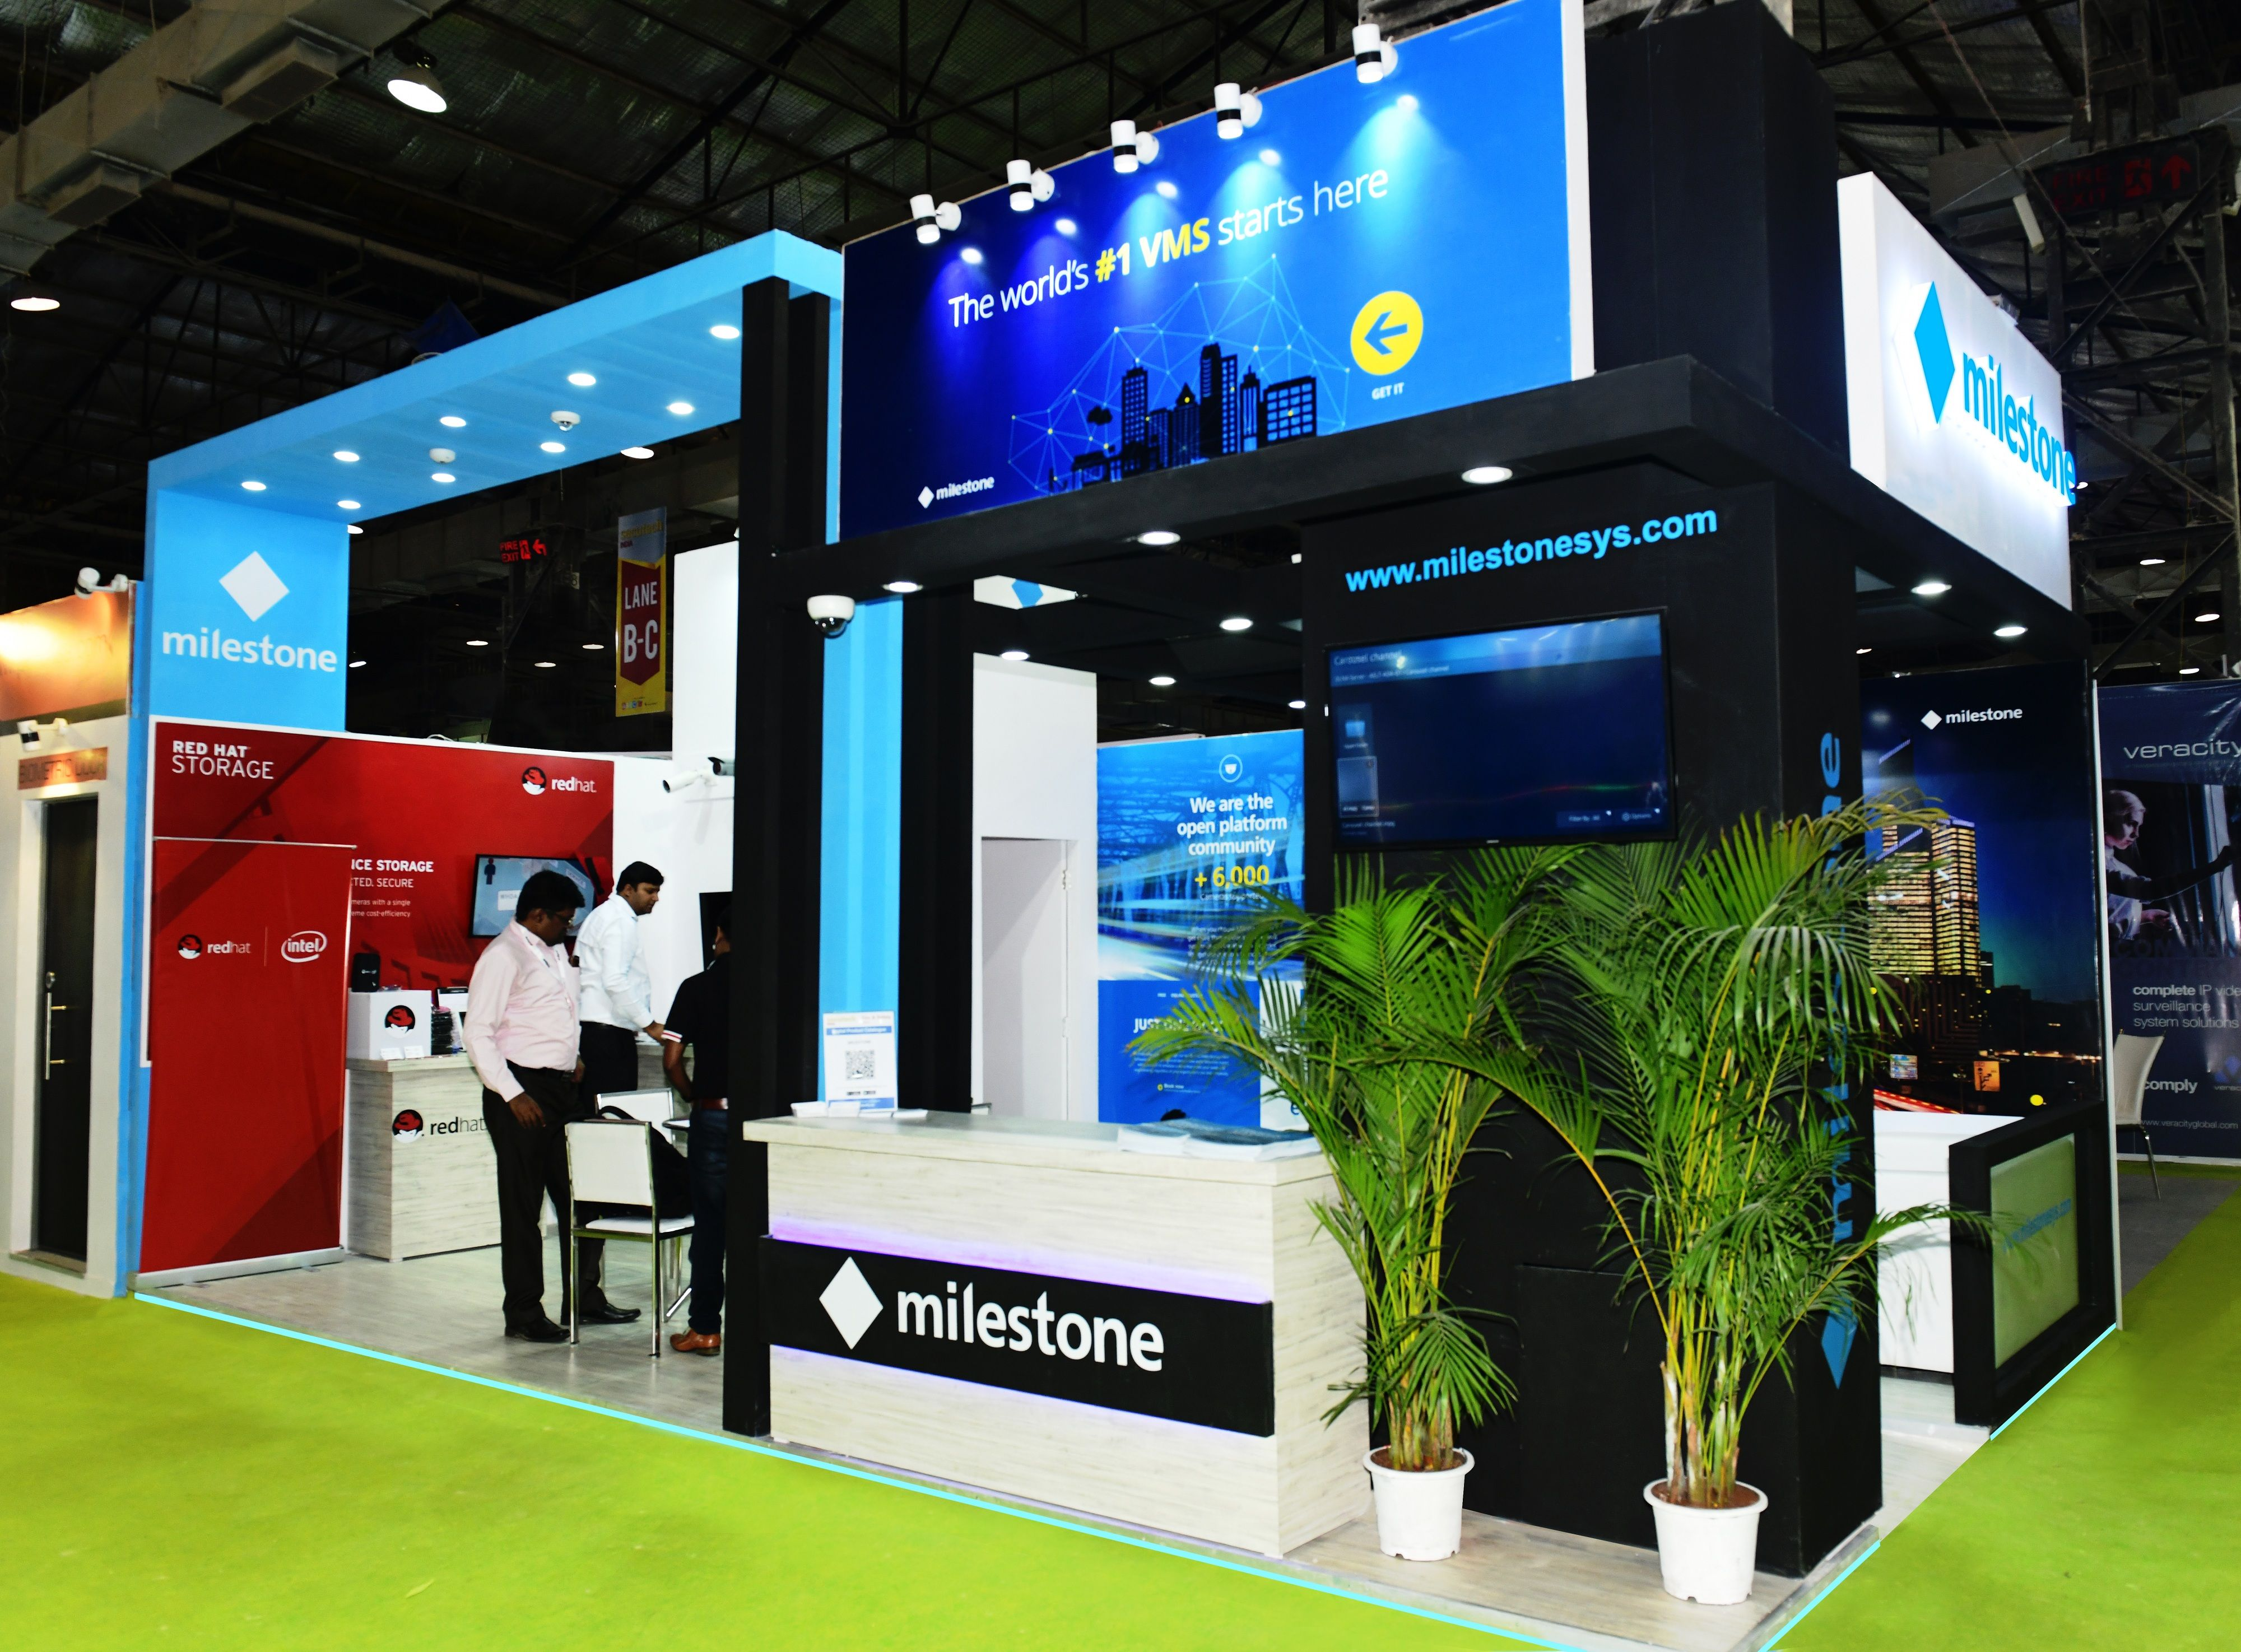 Get inspired by this modern exhibition stall design developed by Panache Exhibitions for Milestone at Secutech Mumbai 2018.  #exhibition #stalldesign #milestone #panacheexhibitions #standbuilders #exhibitiondesign #exhibitions #exhibitionstand #secutechmumbai2018 #exhibitionbooth